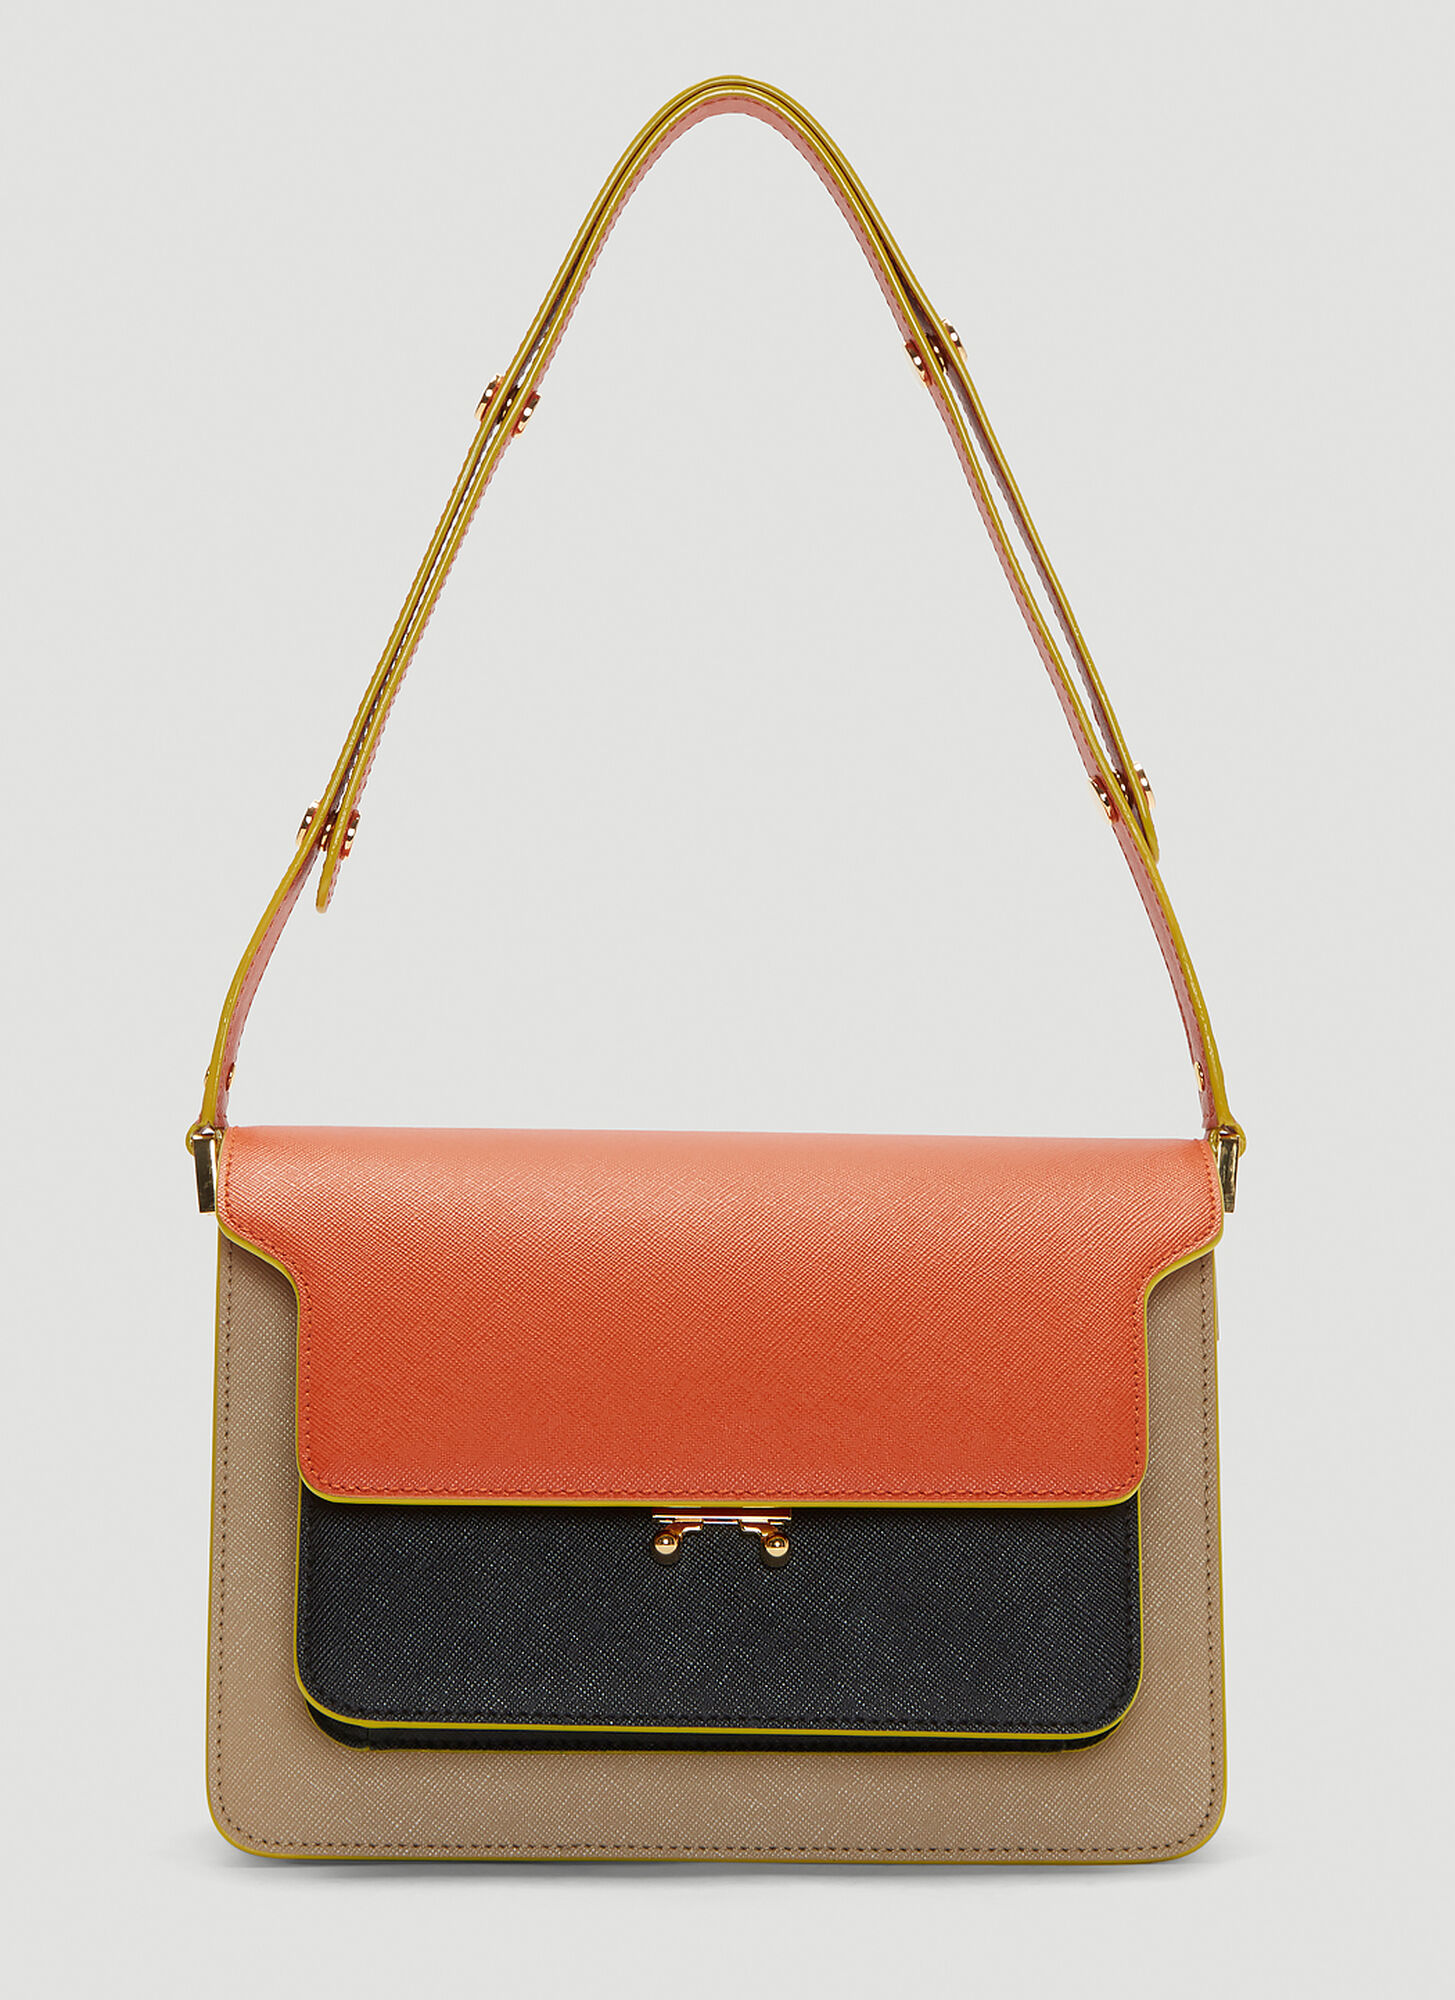 Marni Medium Trunk Bag in Orange